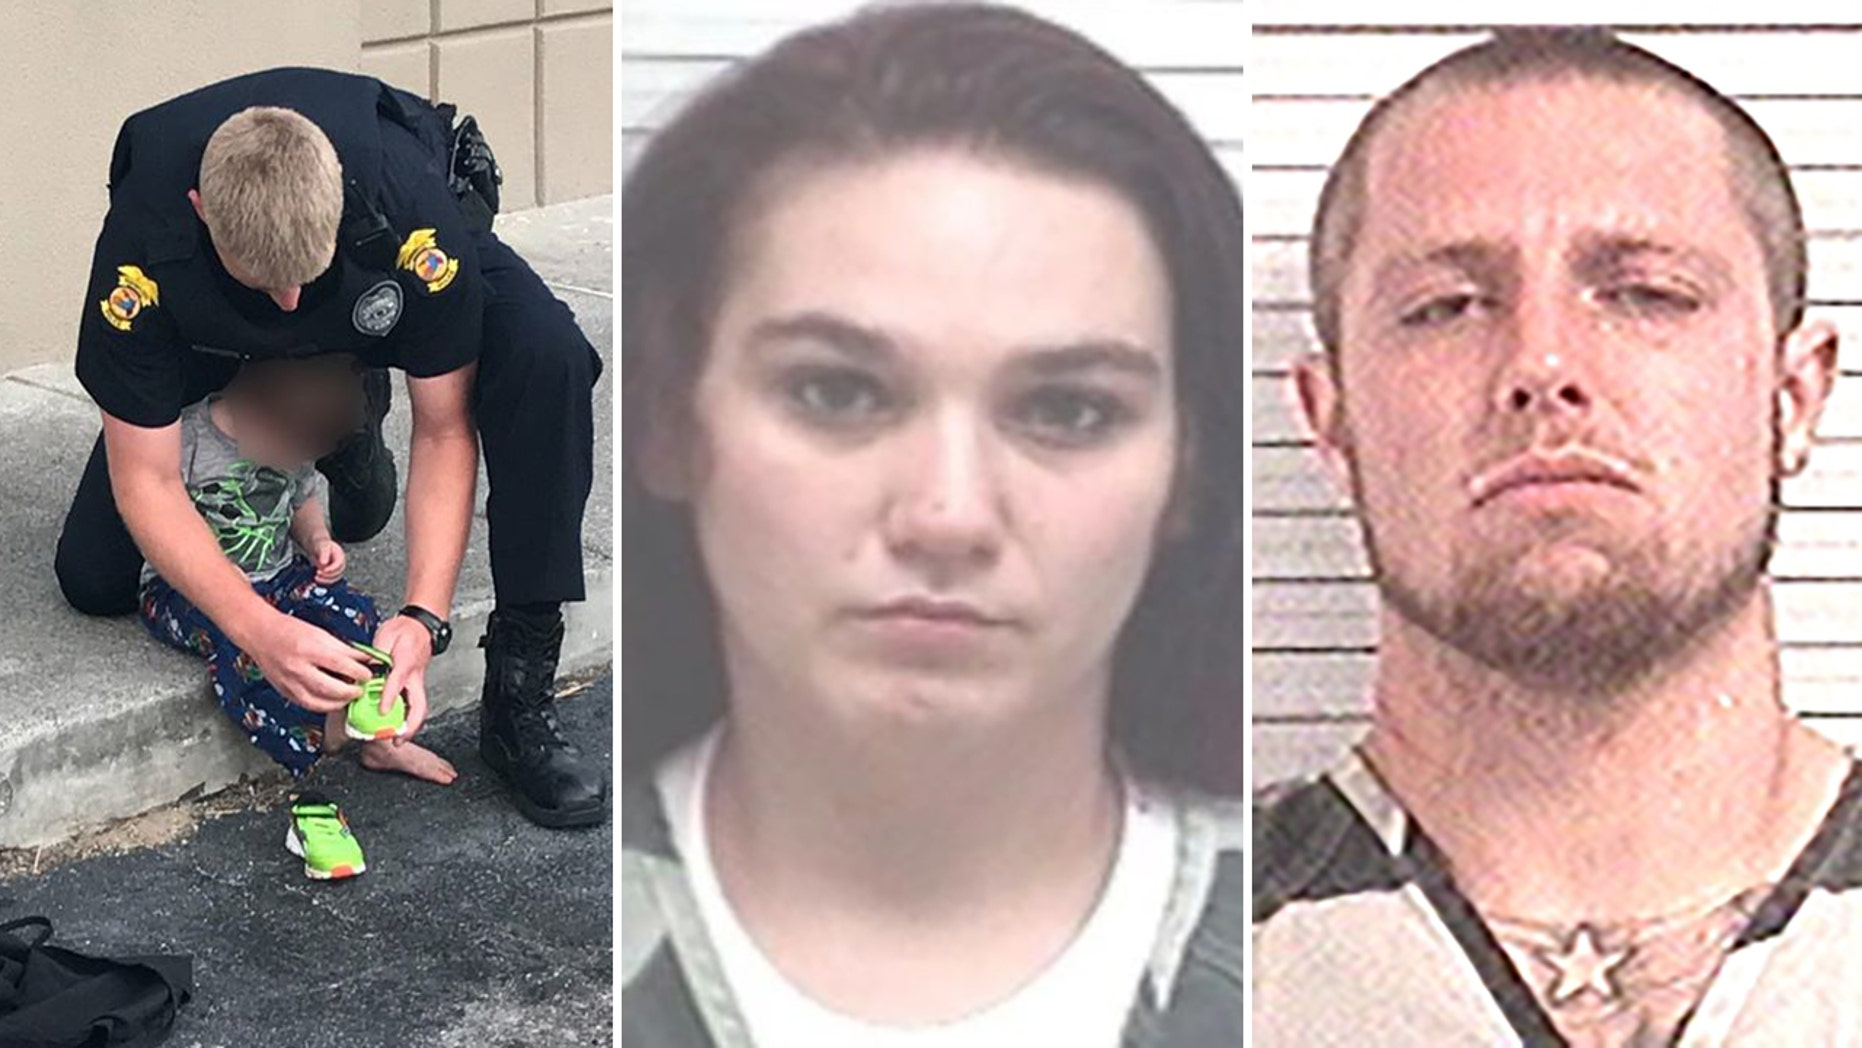 The toddler and his 9-month-old twin siblings were put in the care of the Department of Children and Families. Their mother, 24-year-old Jordyn Freeman, center, and her fiance, 27-year-old Randy McMillin, right, are originally from Ohio.